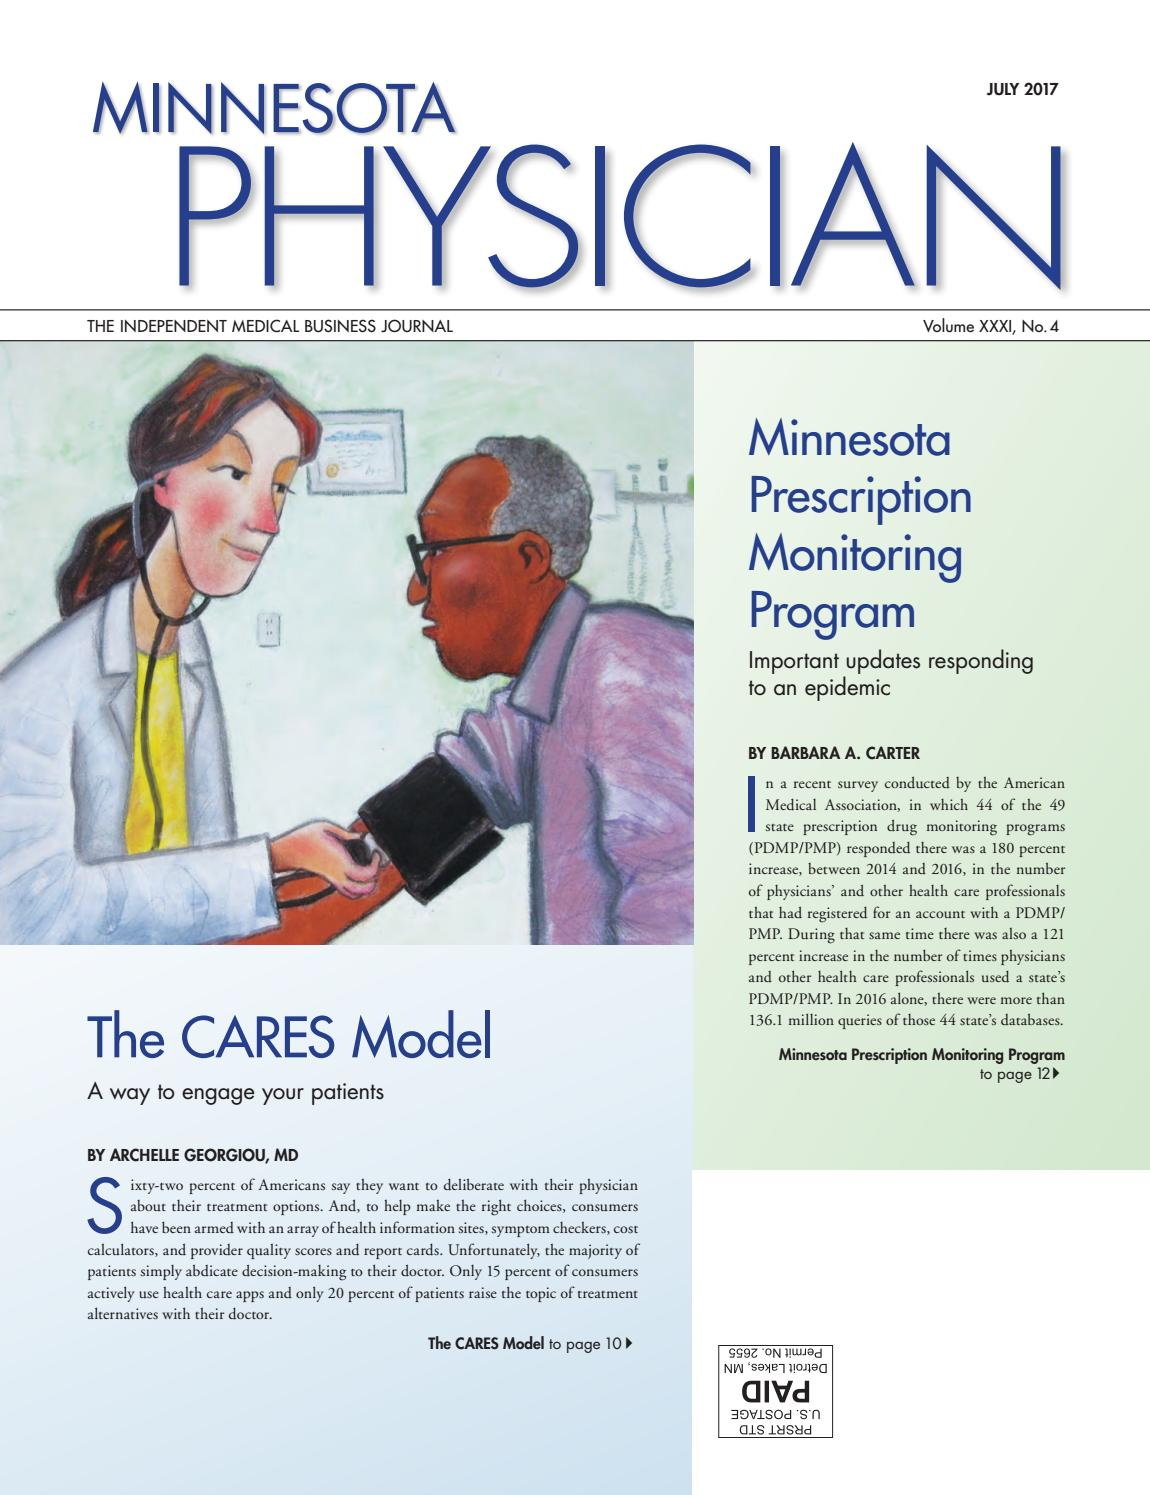 MN Physician July 2017 by Minnesota Physician Publishing - issuu